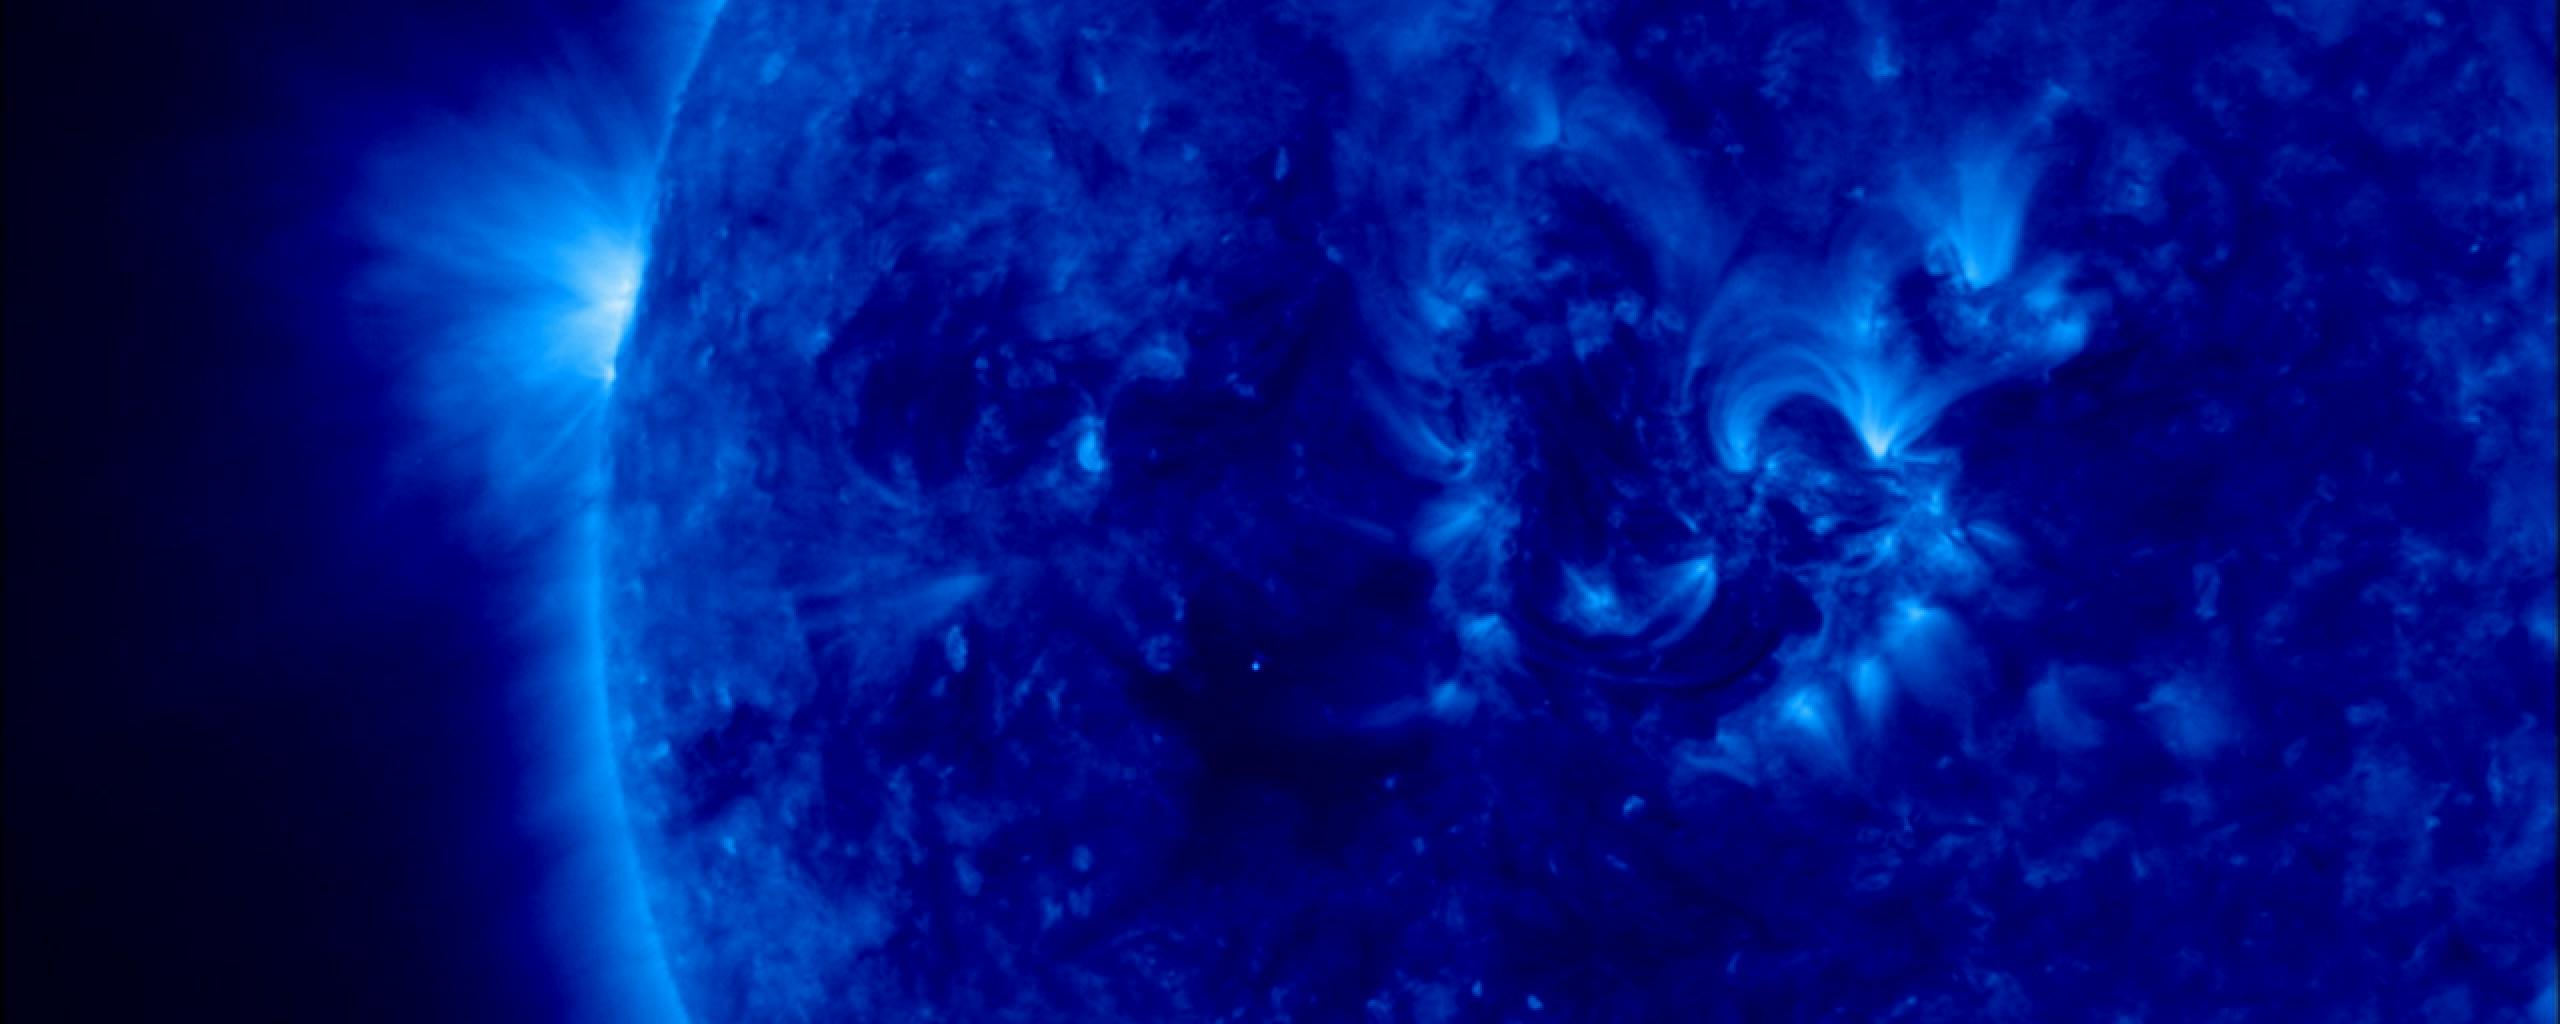 blue star, showing a solar flare